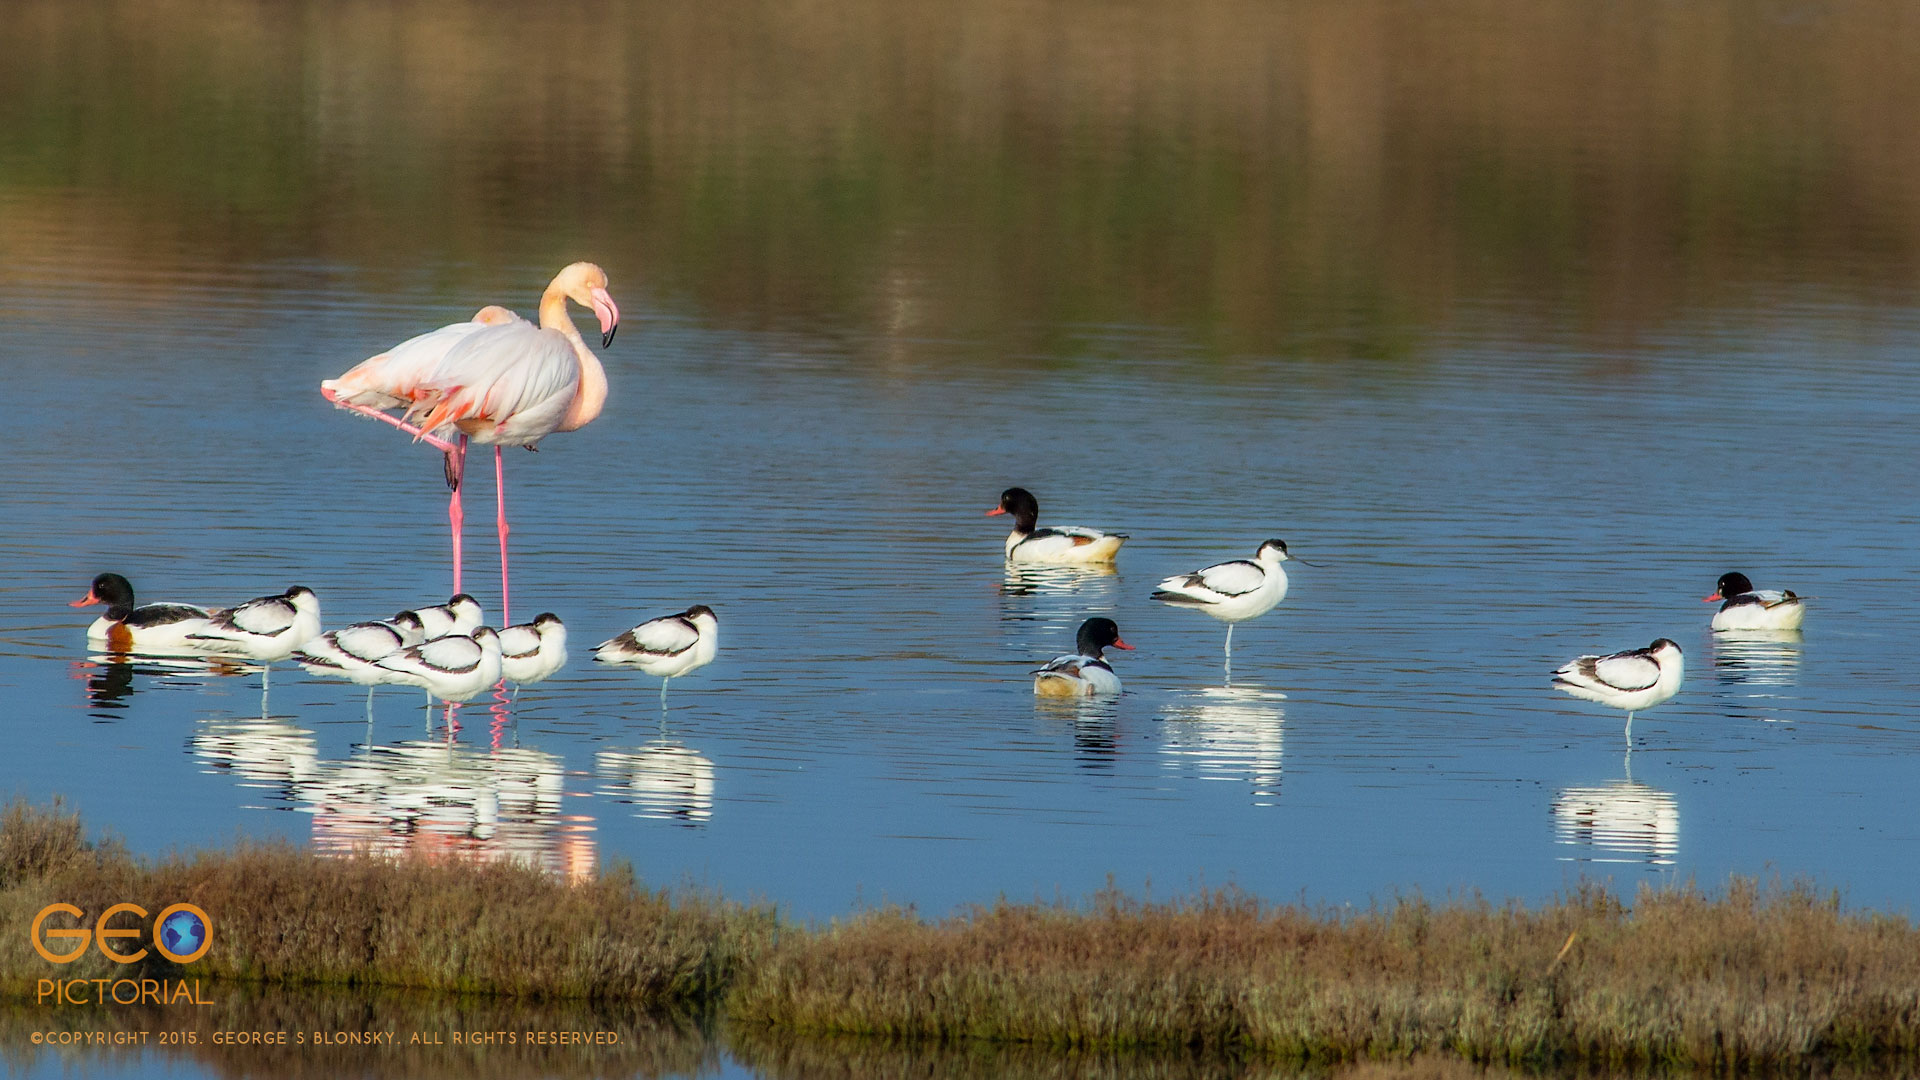 Greater Flamingo (Phoenicopterus roseus) with Shelduck (Tadorna tadorna) and Avocets (Recurvirostra avosetta)